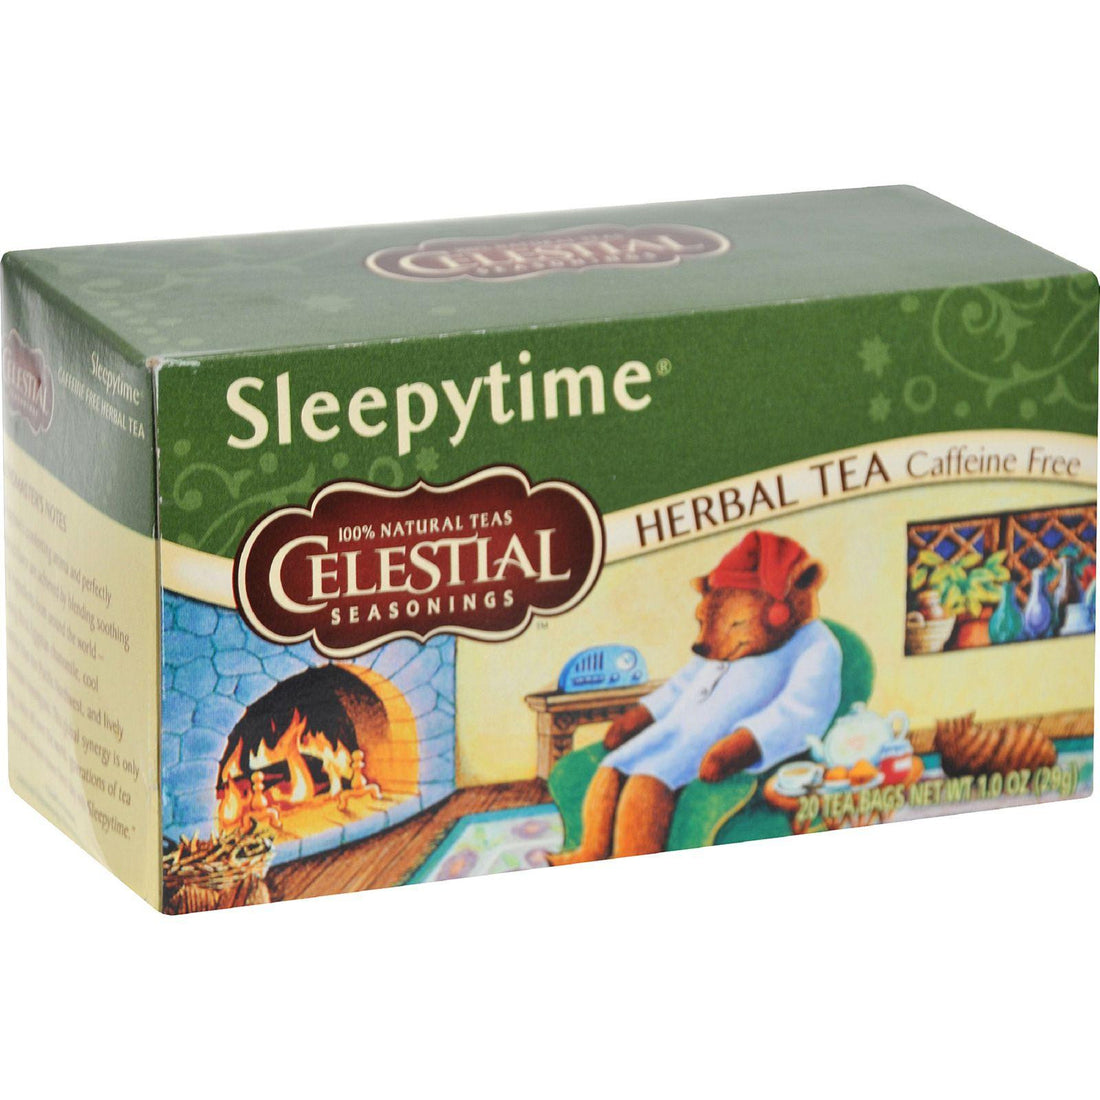 Mother Mantis: Celestial Seasonings Herbal Tea - Sleepytime - Caffeine Free - 20 Bags Celestial Seasonings